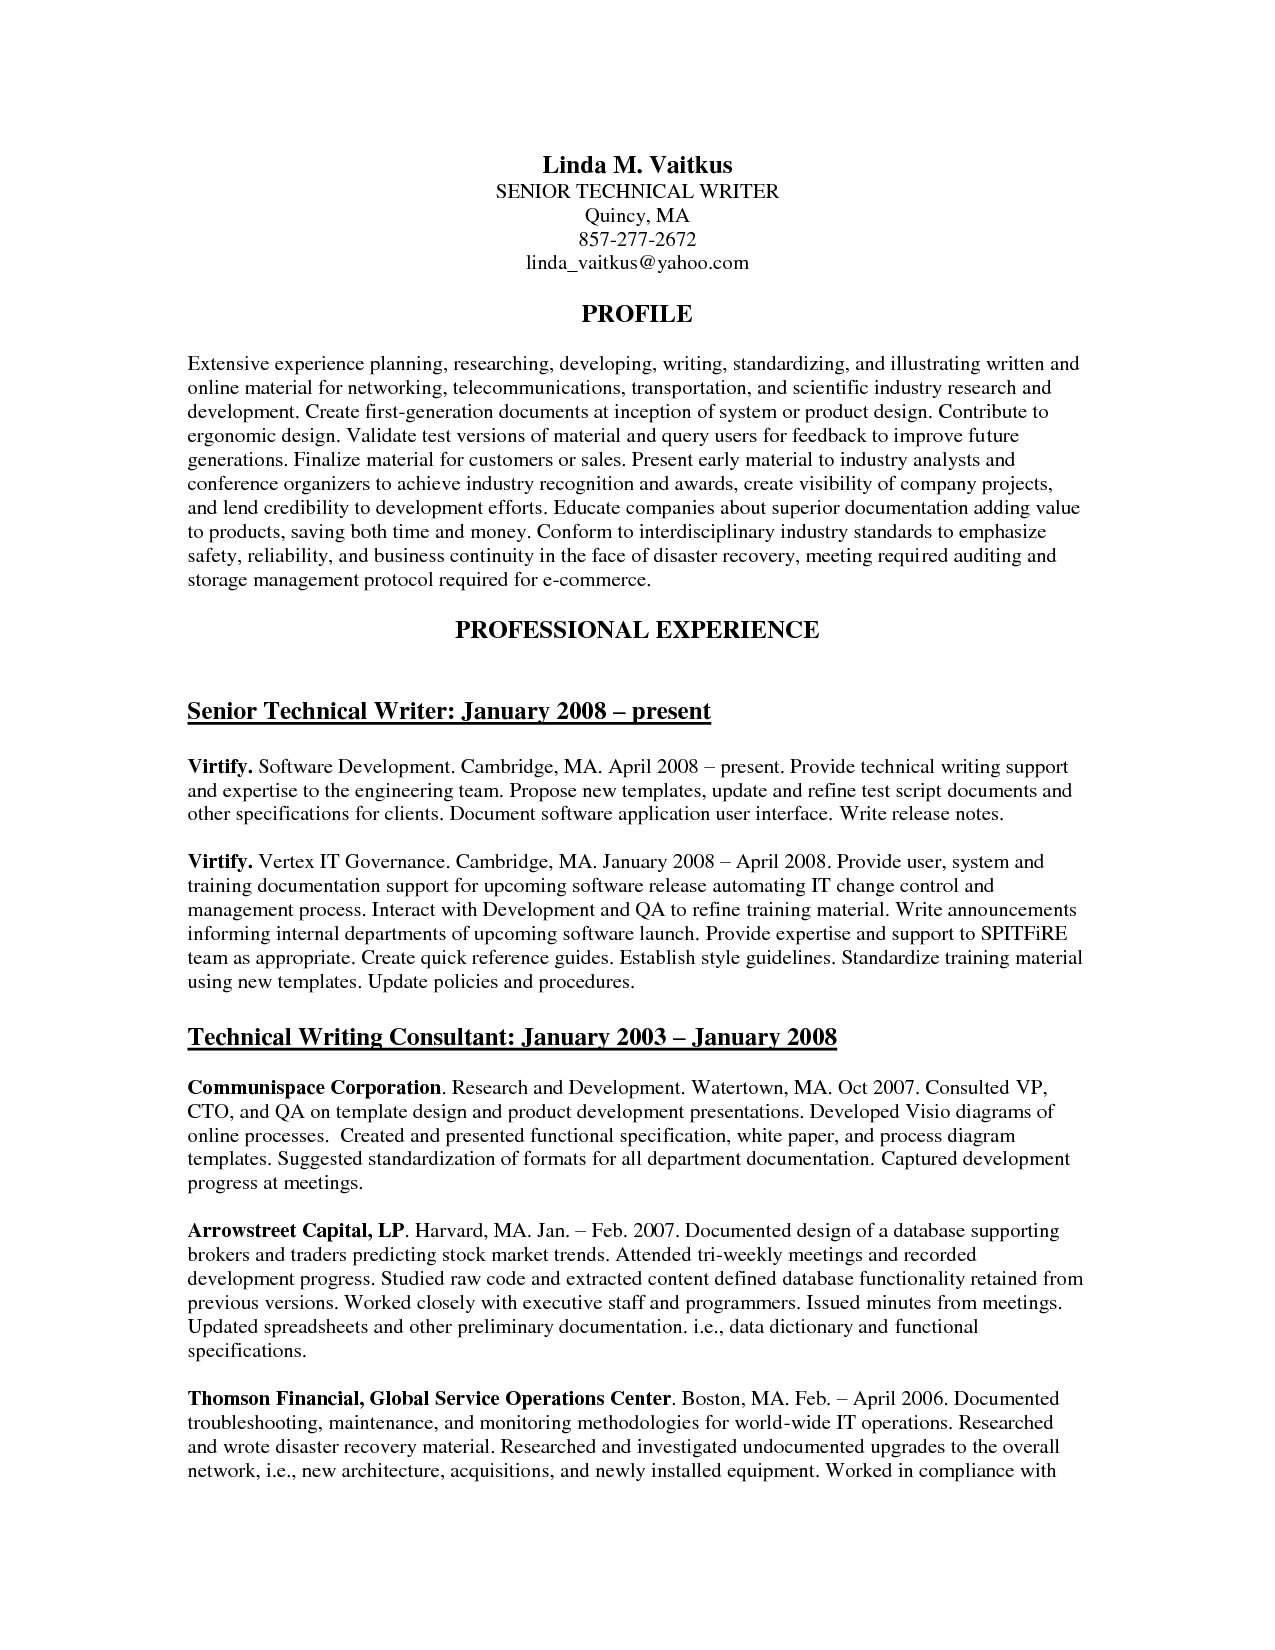 Resume Writing Examples Resume Writers Best Templatewriting A Resume Cover Letter Examples